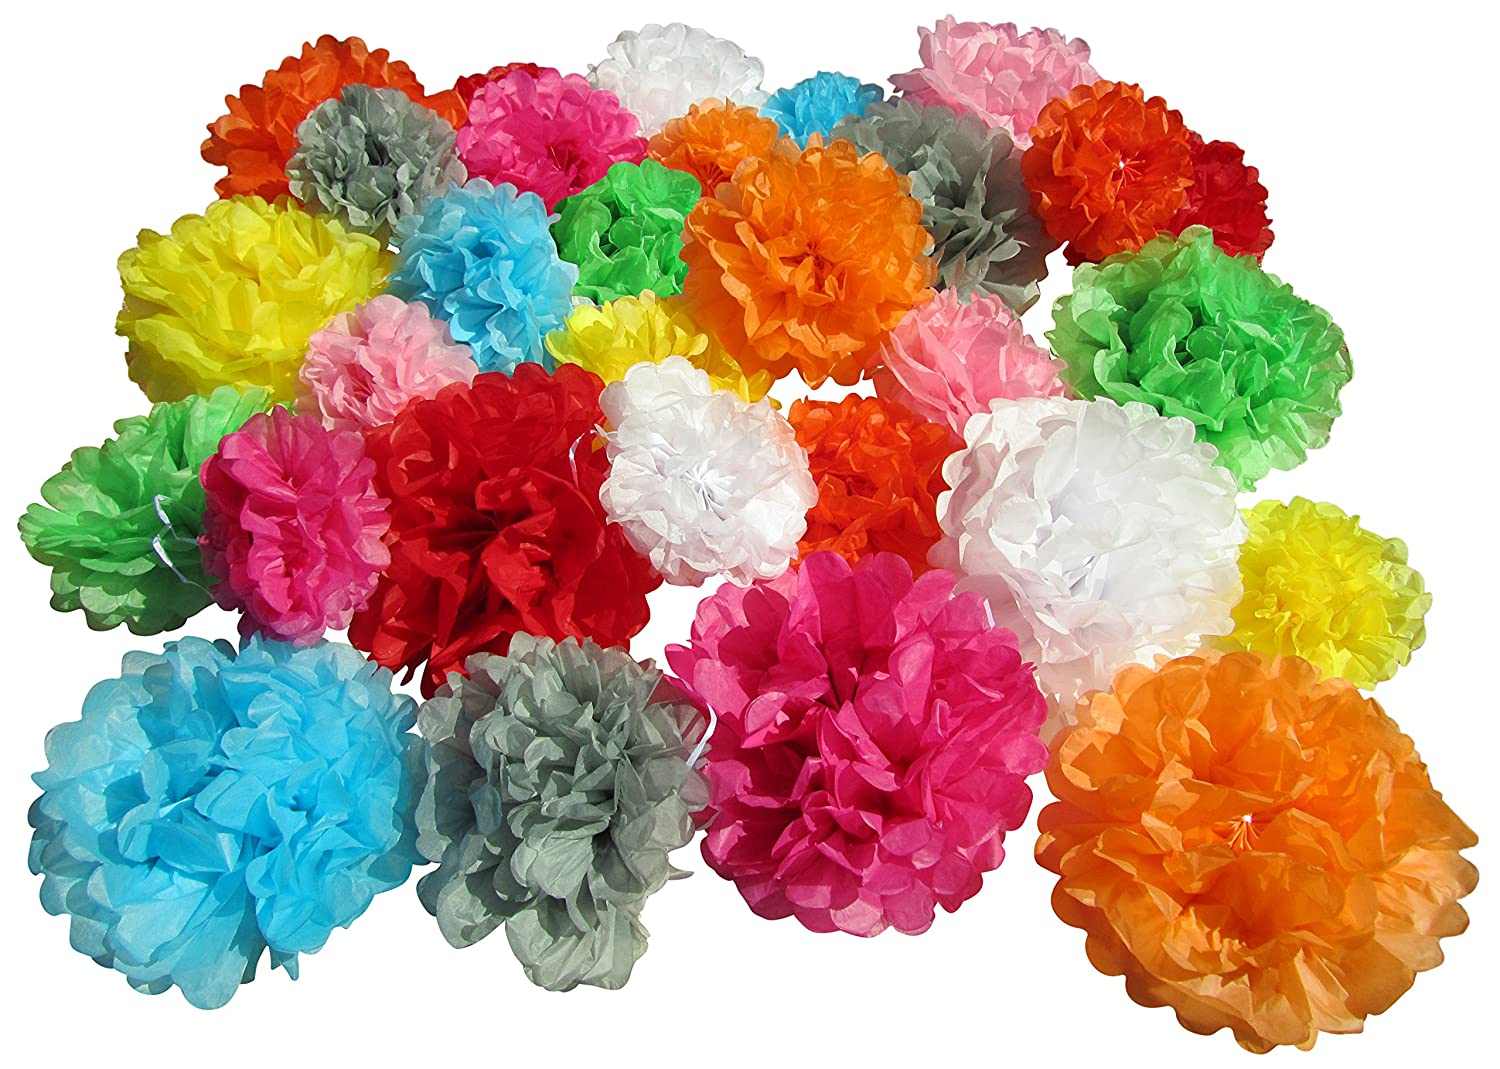 Amazon.com: Use4Party Tissue Paper Pom Poms - Set of 30 Pcs - Pre ...